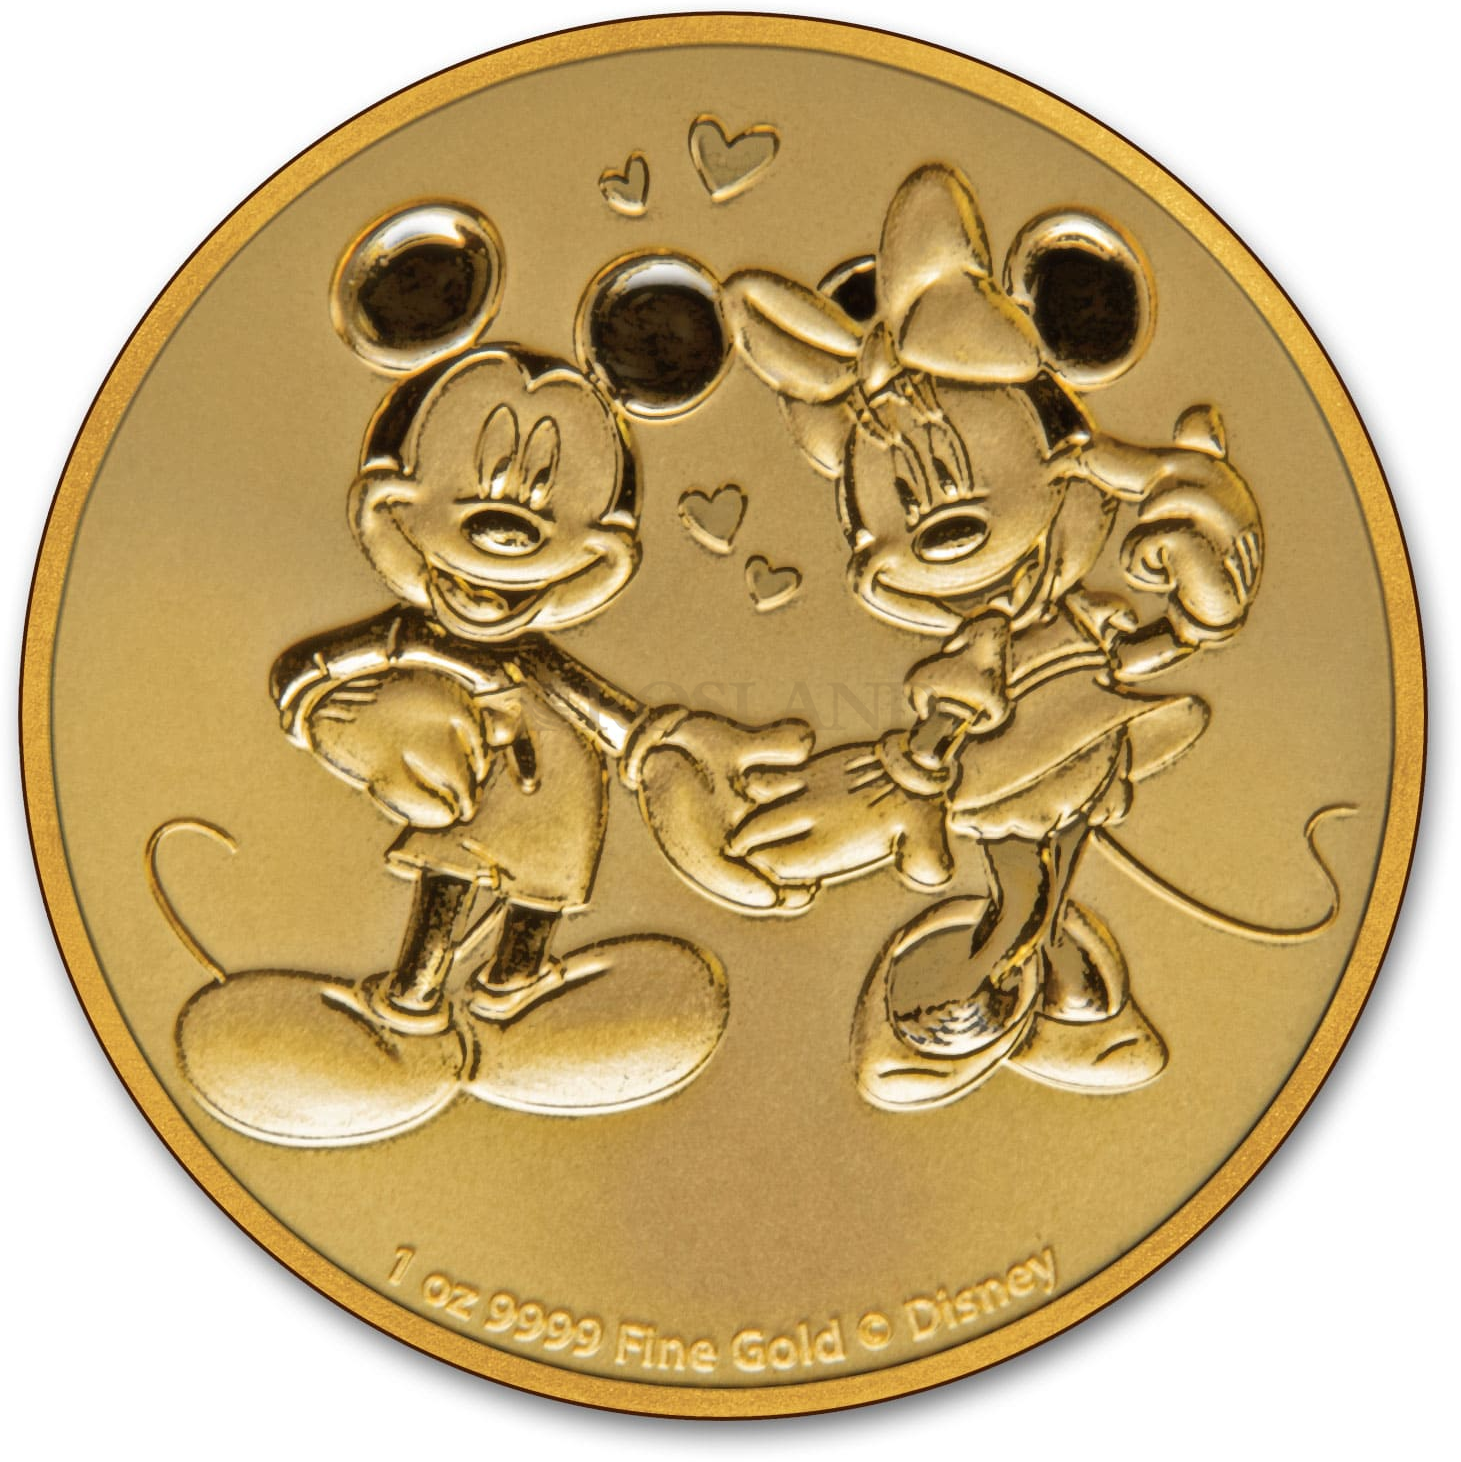 1 Unze Goldmünze Disney® Micky & Minnie Maus 2020